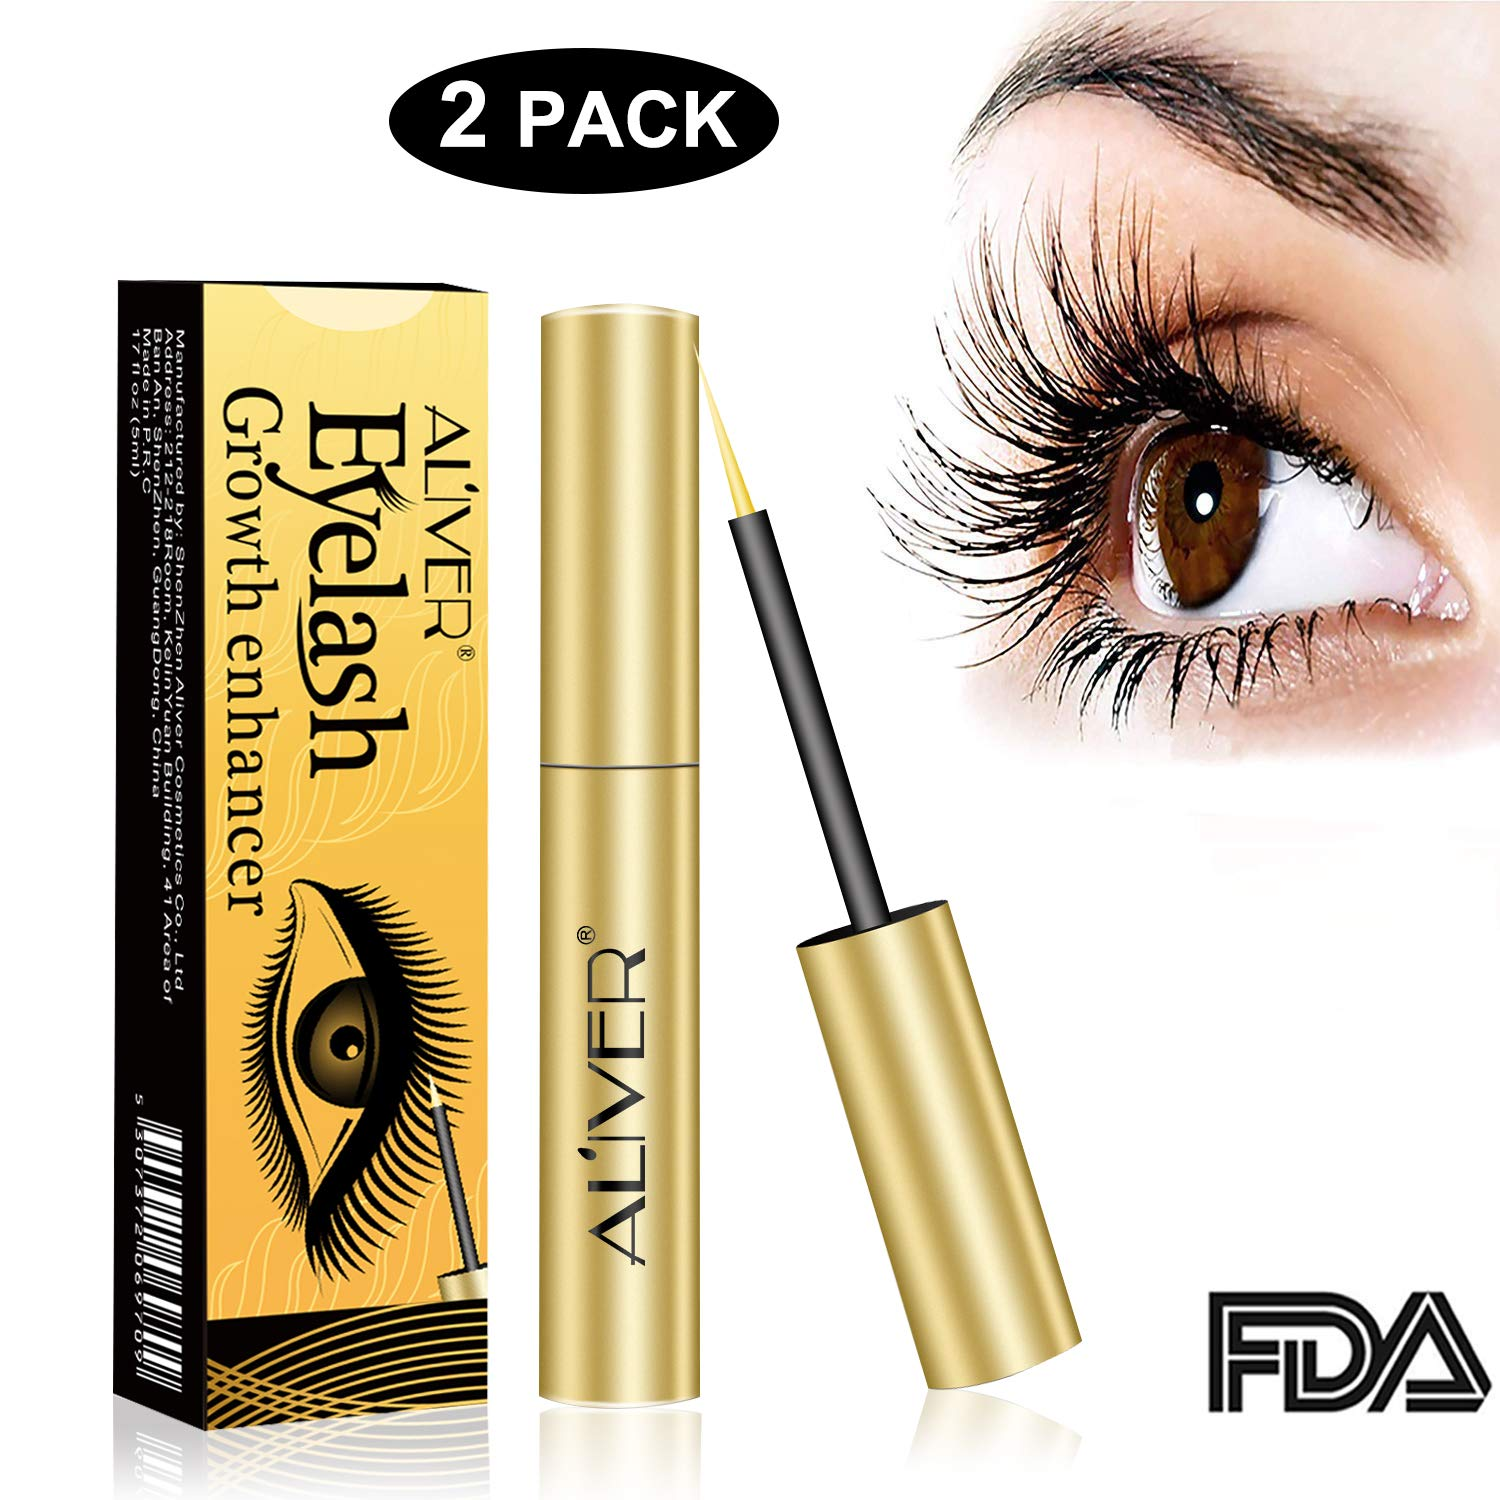 da1512205d6 Amazon.com: Eyelash Growth Serum Brow Serum for Long ,Rapid Grow Long Thick  Full Eyelashes and Eyebrows 2PCS: Beauty